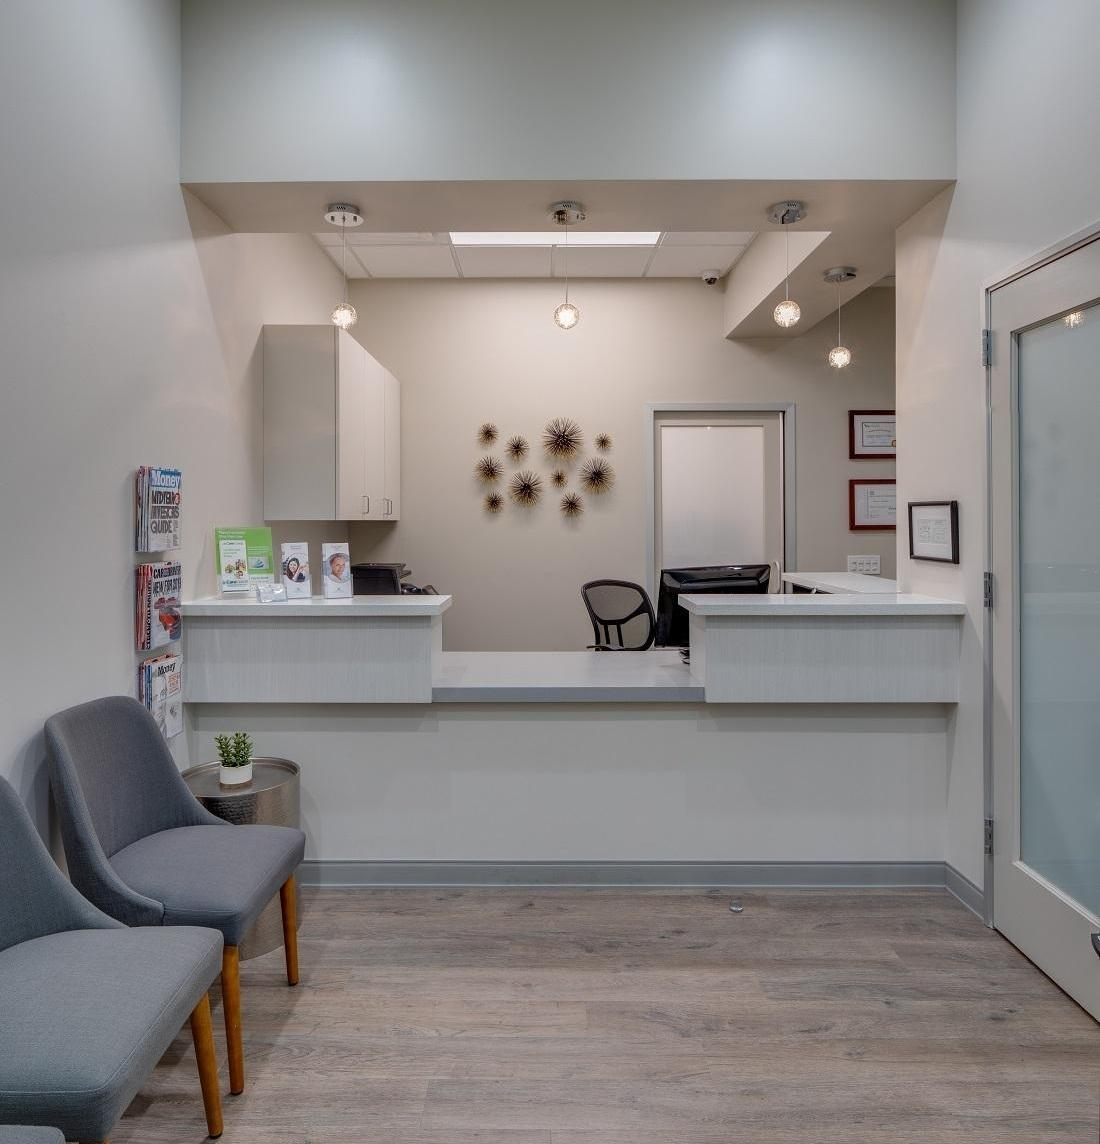 Lake-Forest-Oral-Surgery-Reception-Area